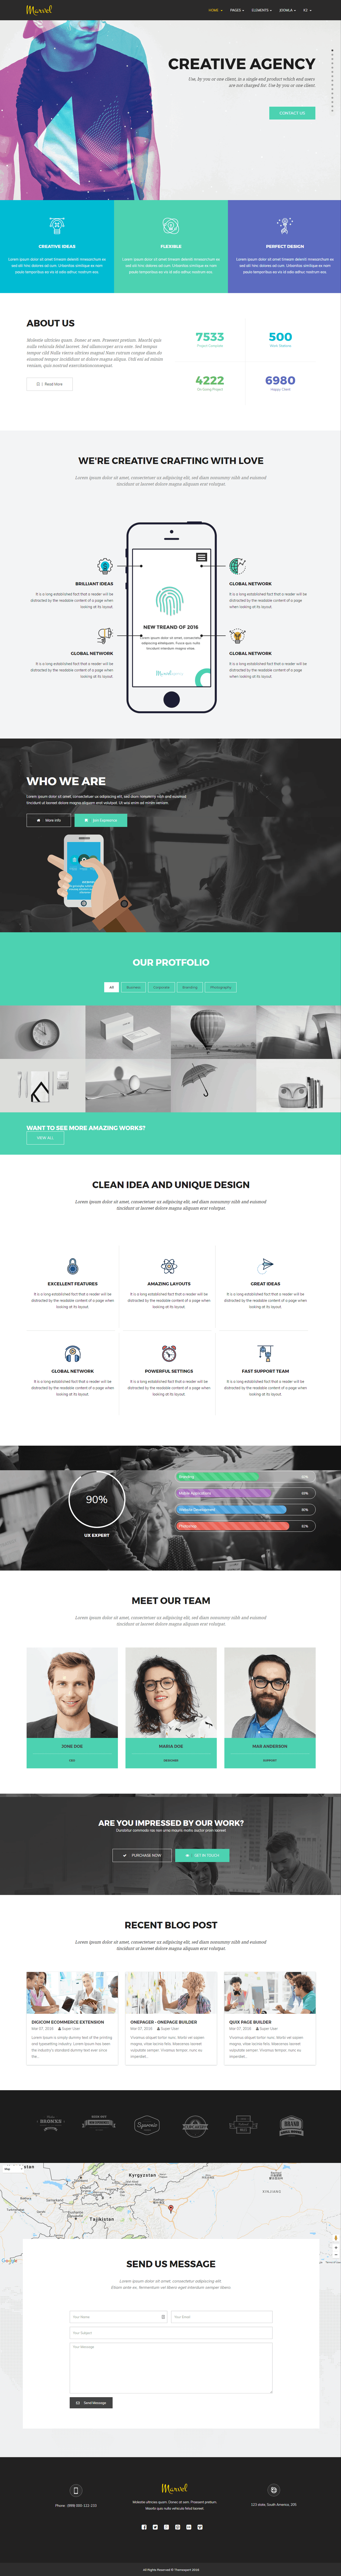 Quix Home Page